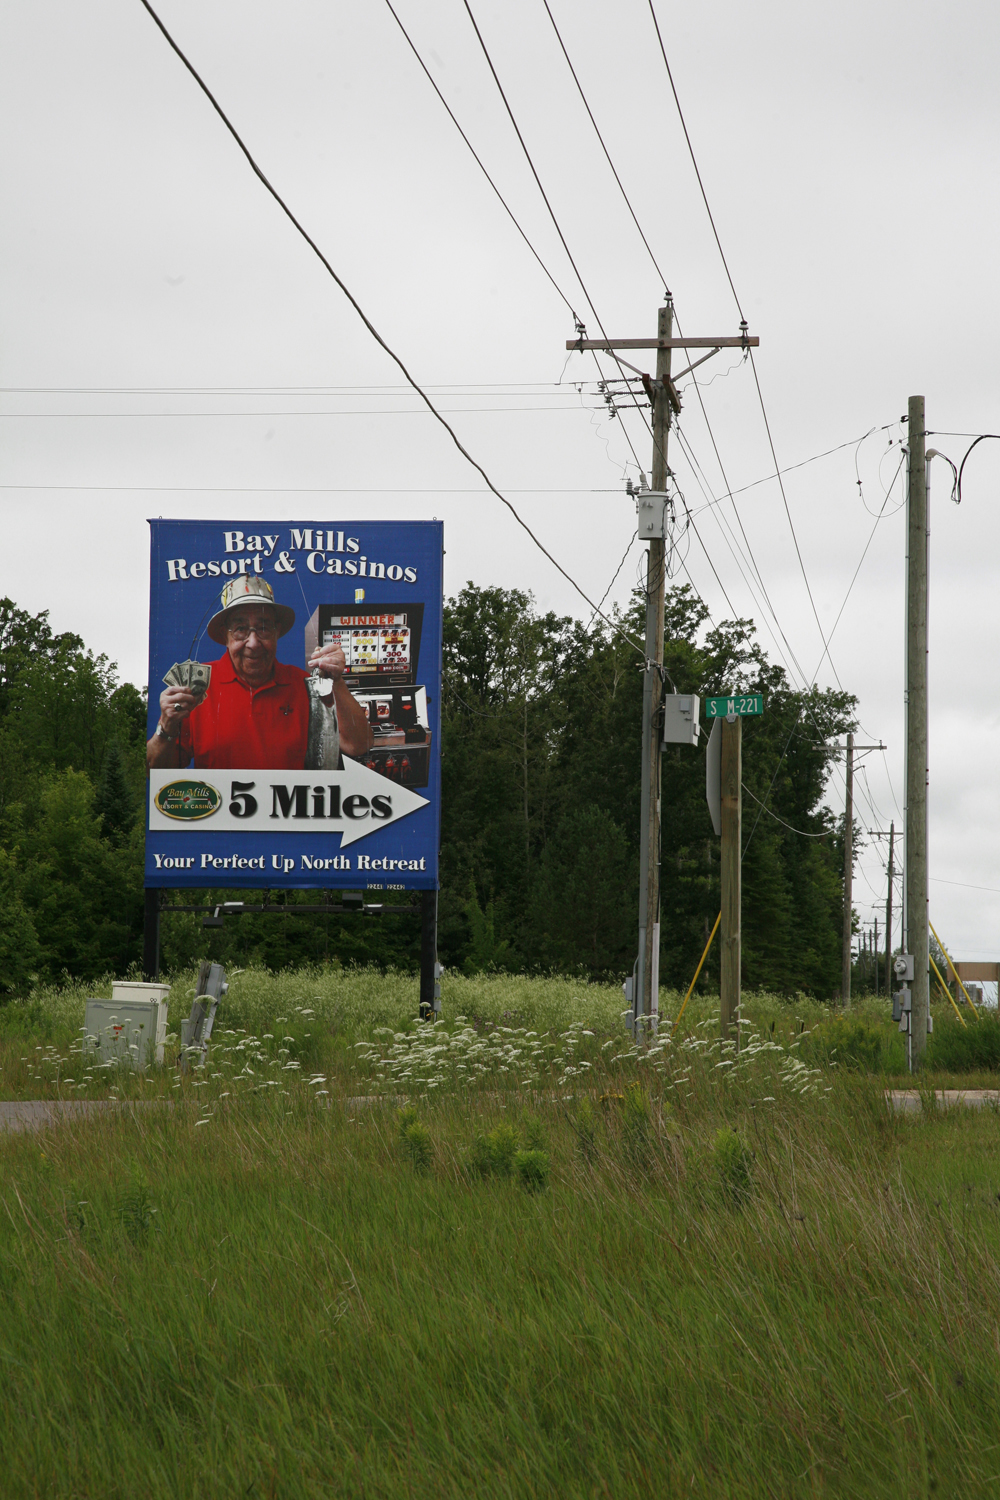 A documentary photograph of billboard advertising a casino in michigan